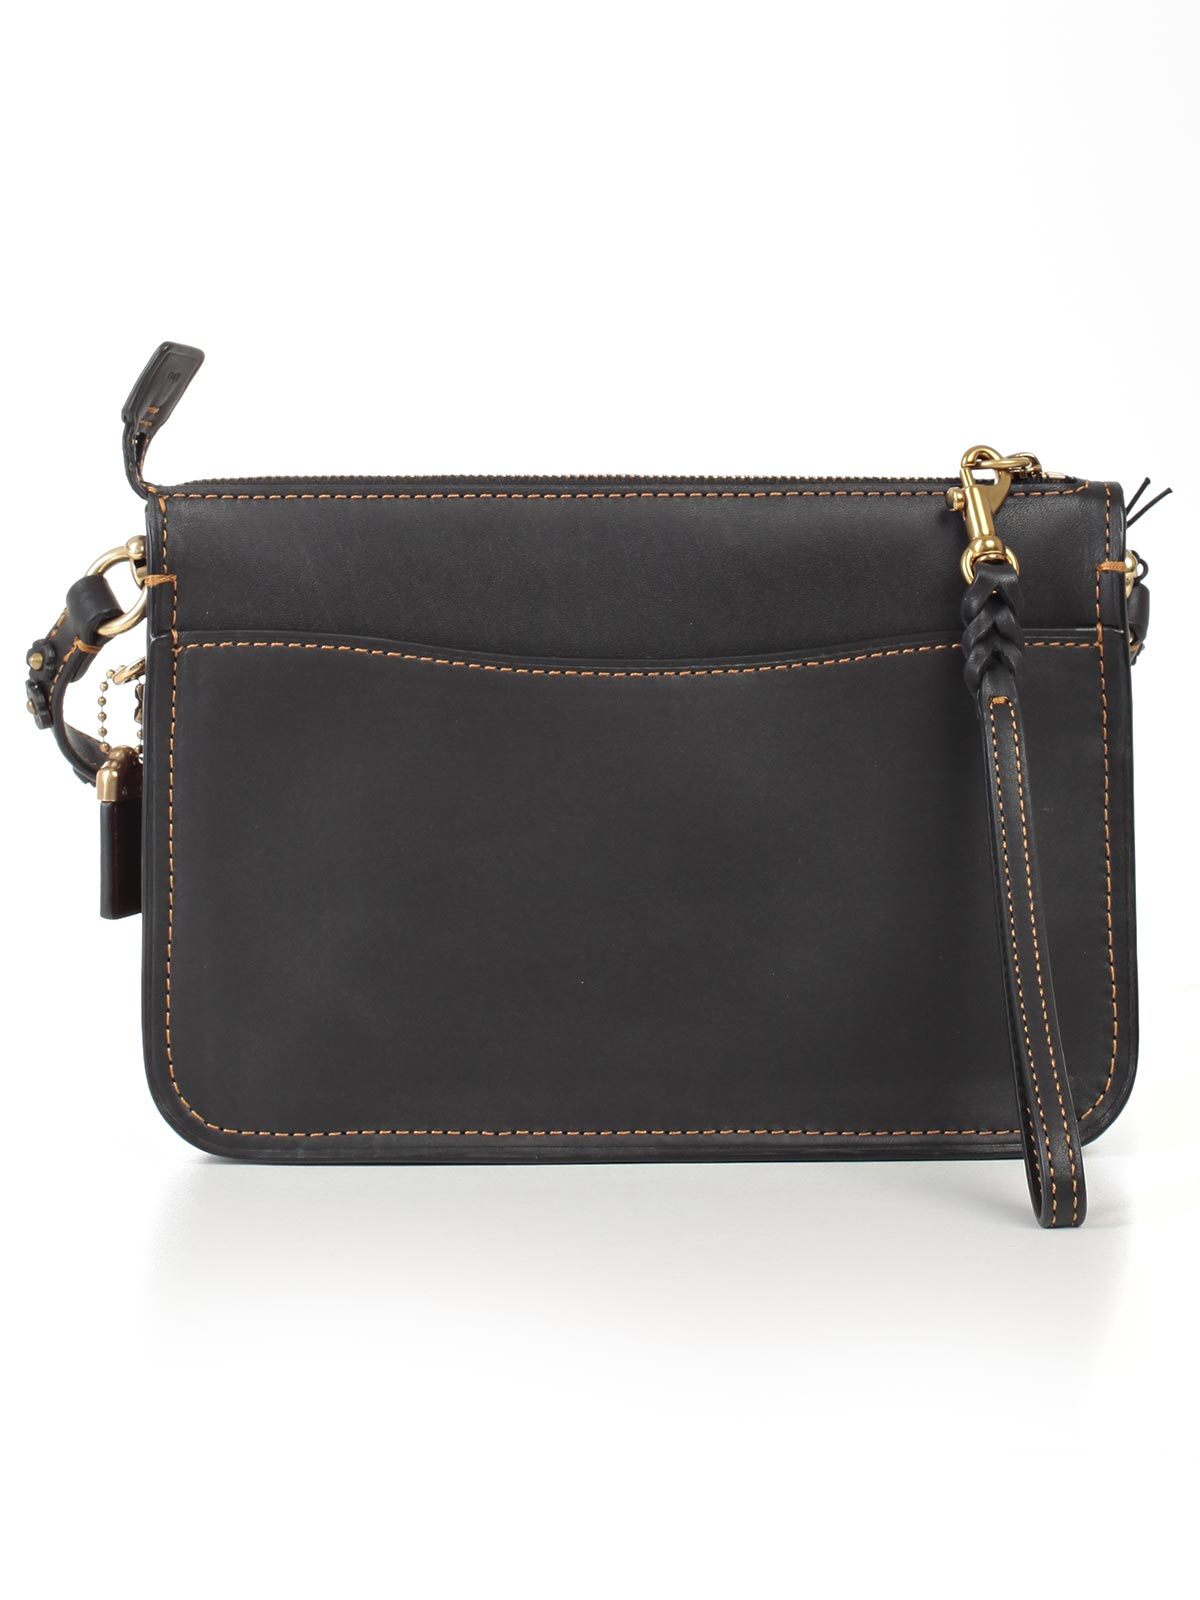 Picture of COACH 1941 Satchel & Crossbody